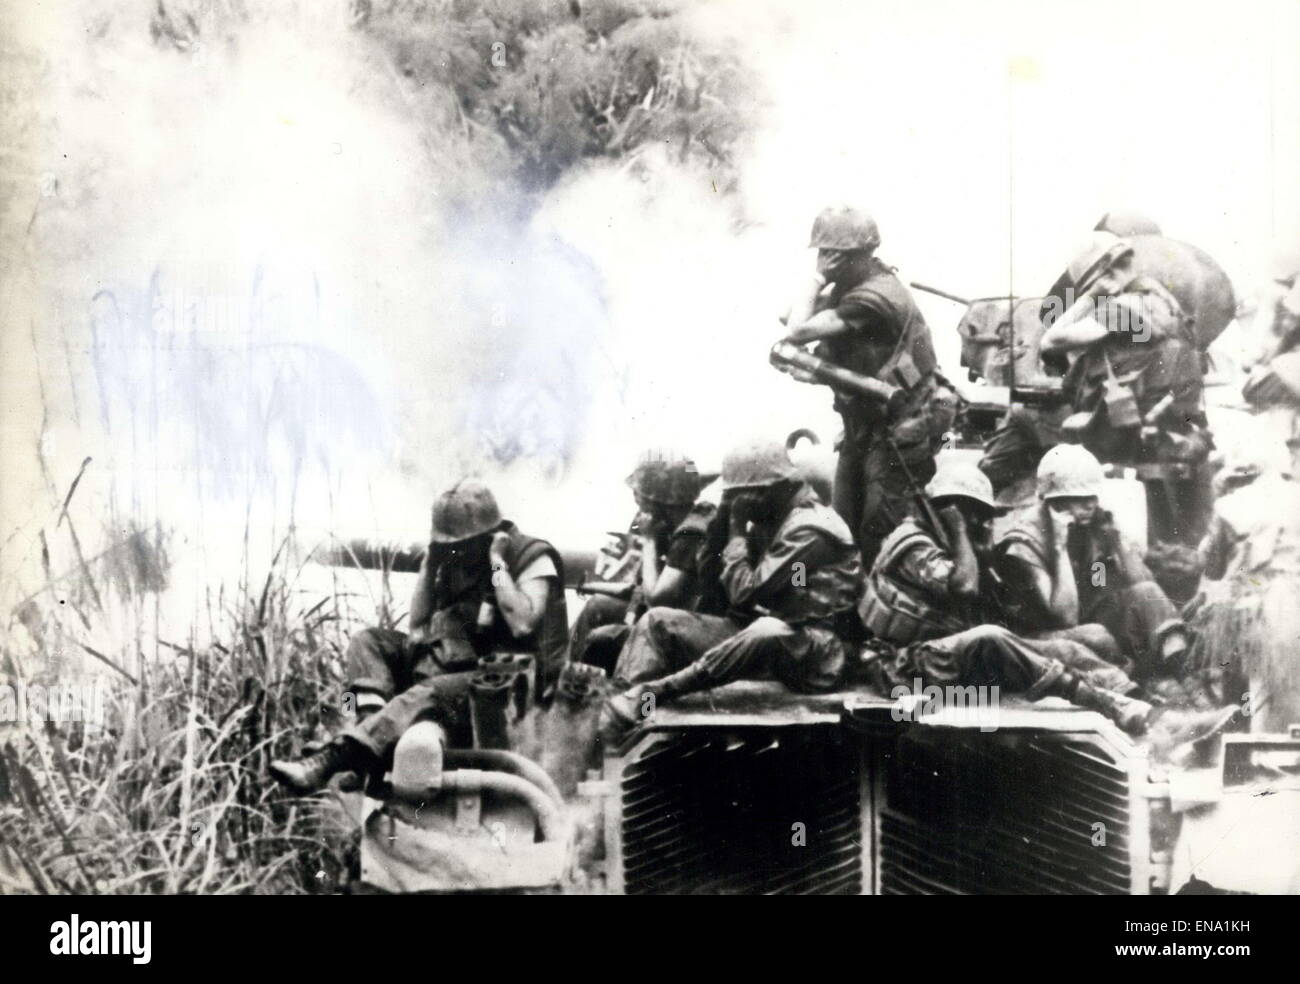 Vietnam War 1954-1975 File-30th-apr-2015-the-vietnam-war-also-known-as-the-second-indochina-ENA1KH